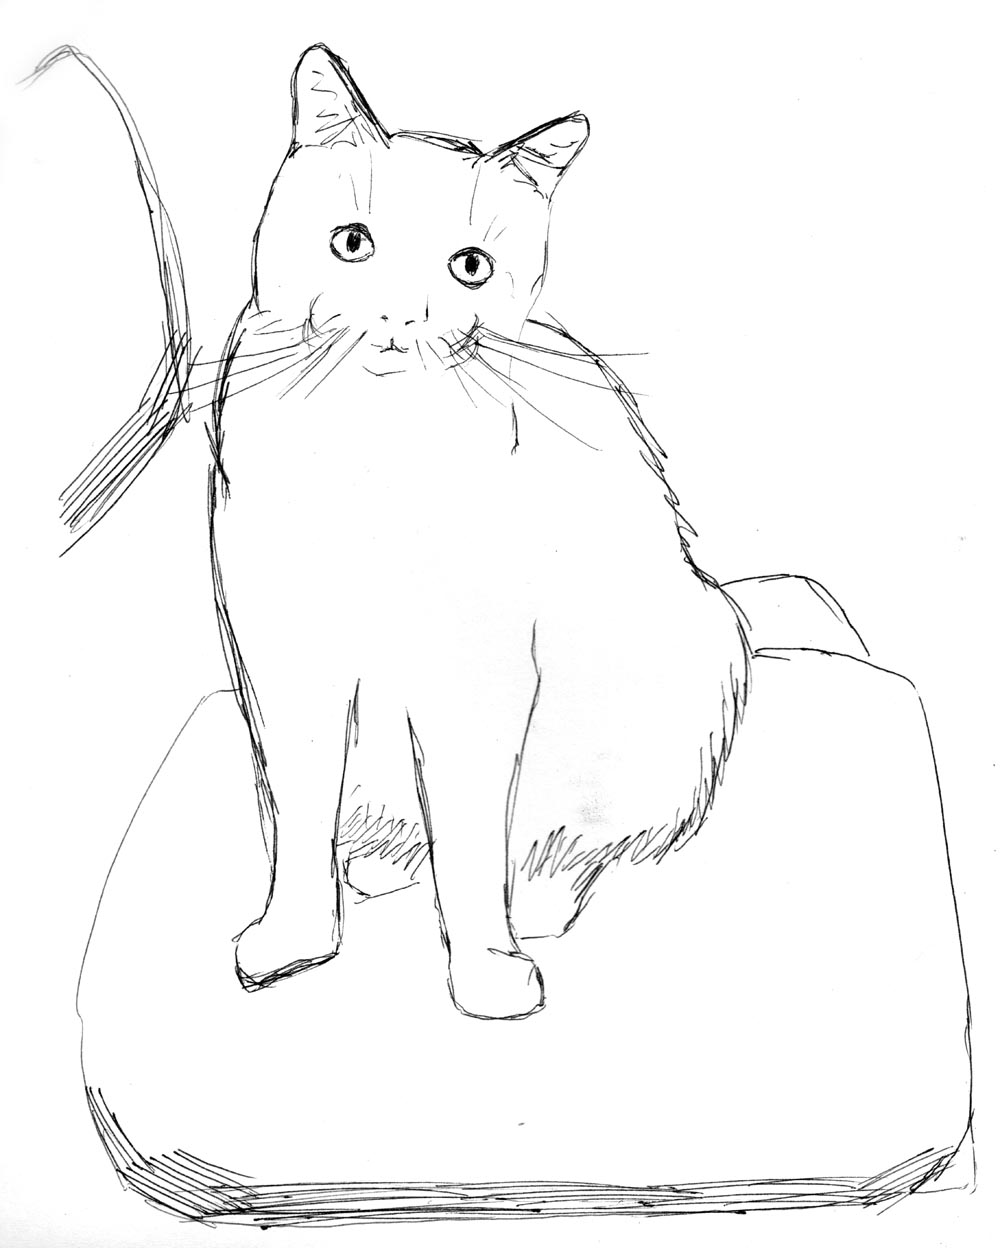 sketch of cat sitting on chair